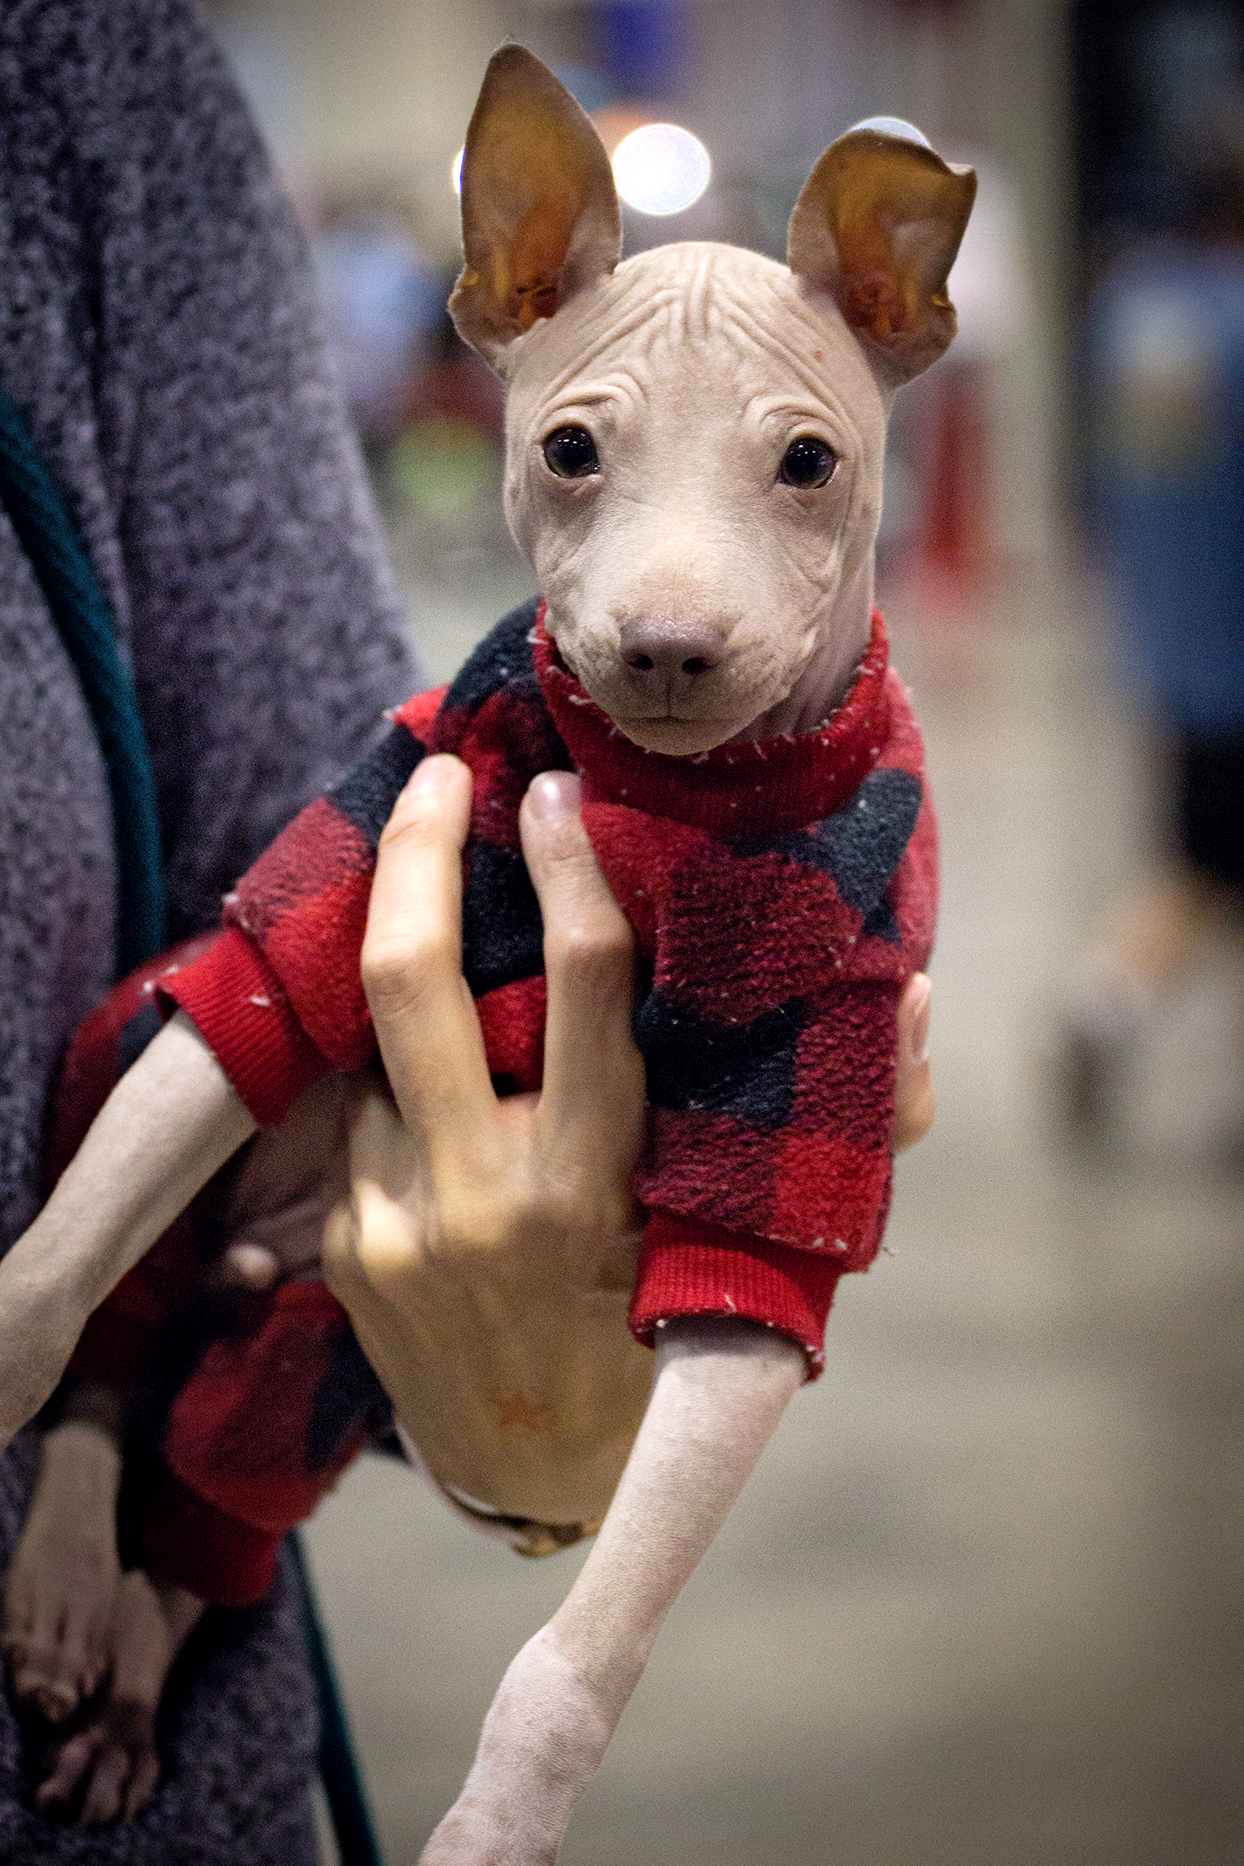 owner holding their american hairless terrier wearing a red plaid jacket